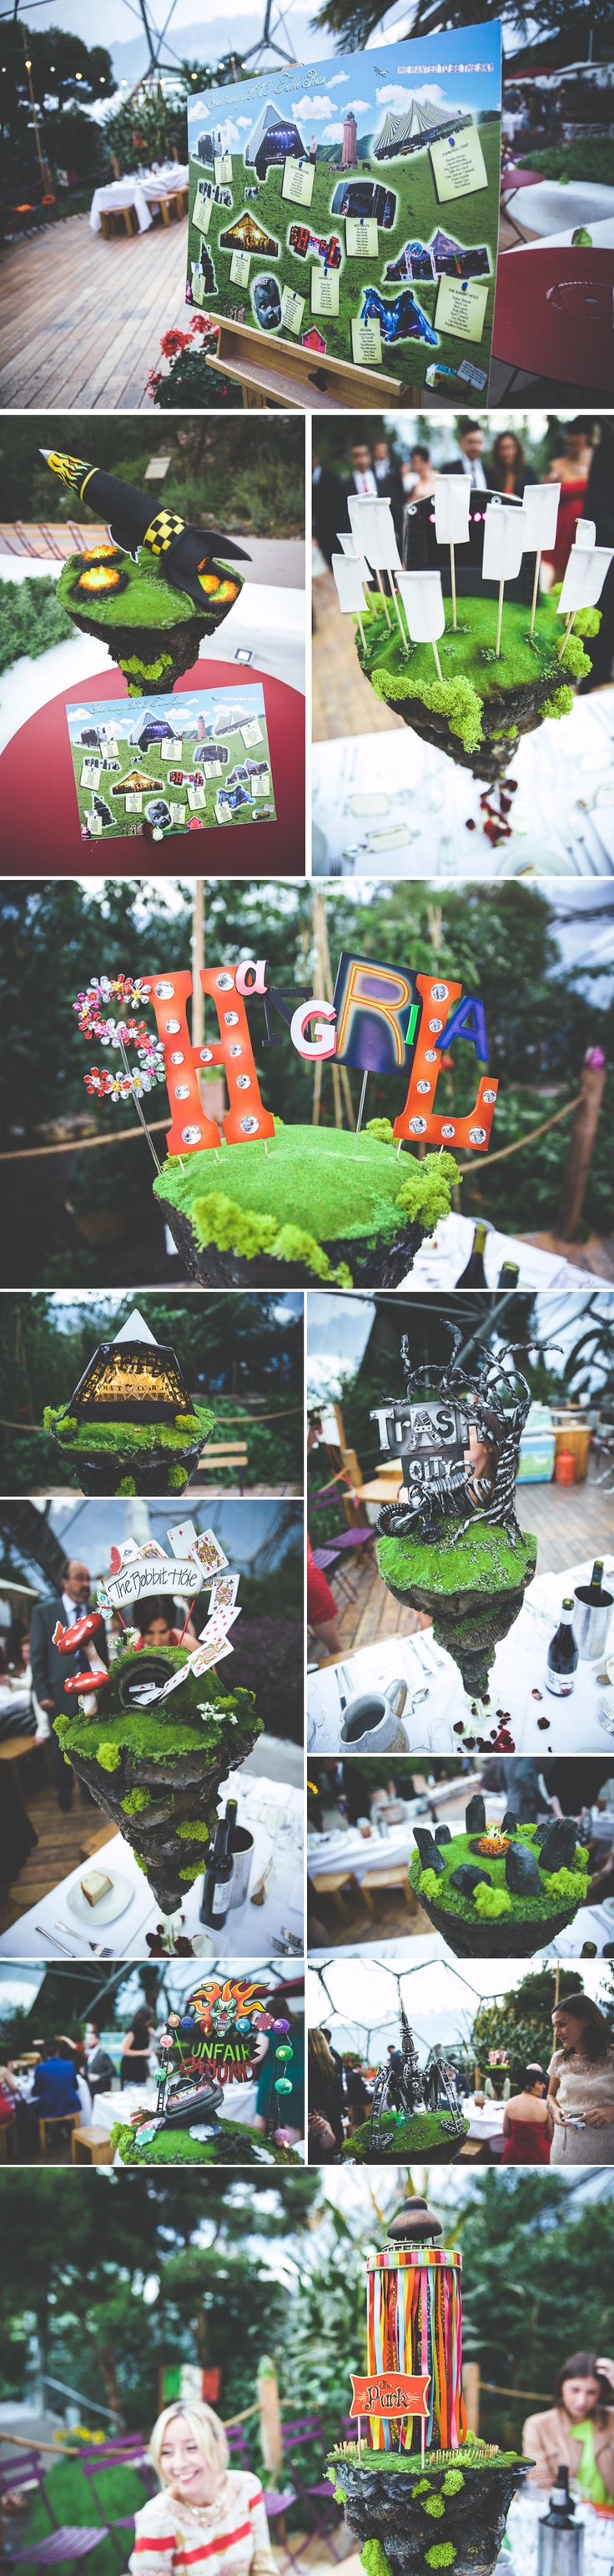 A Glastonbury Festival Themed Wedding At The Eden Project – Charli